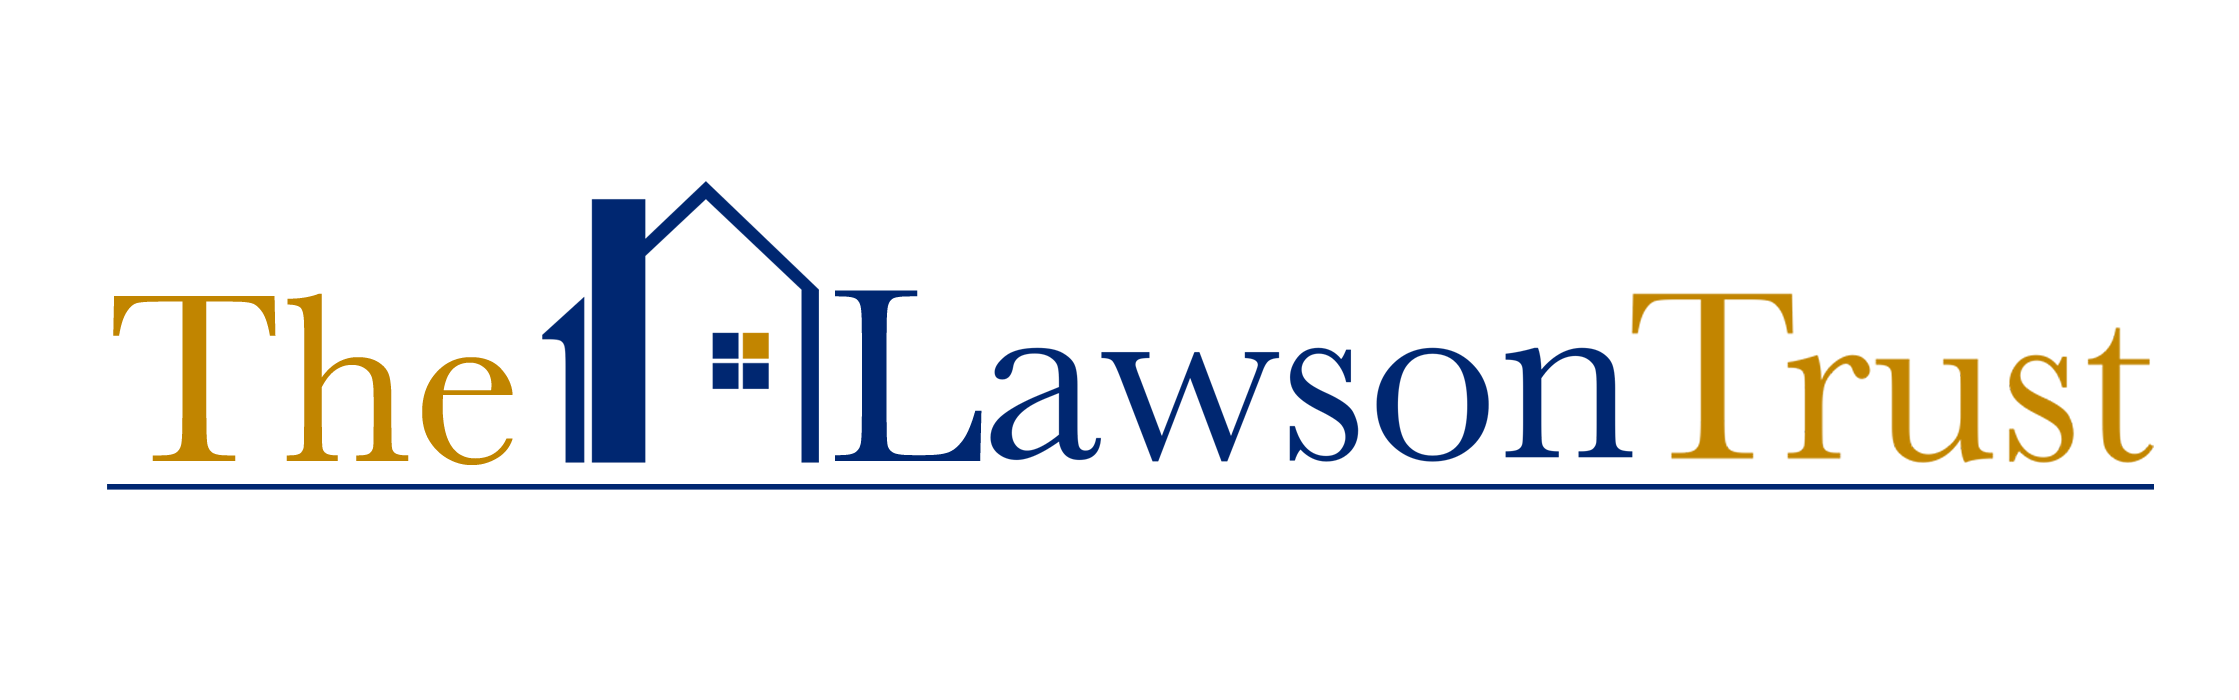 The Lawson Trust